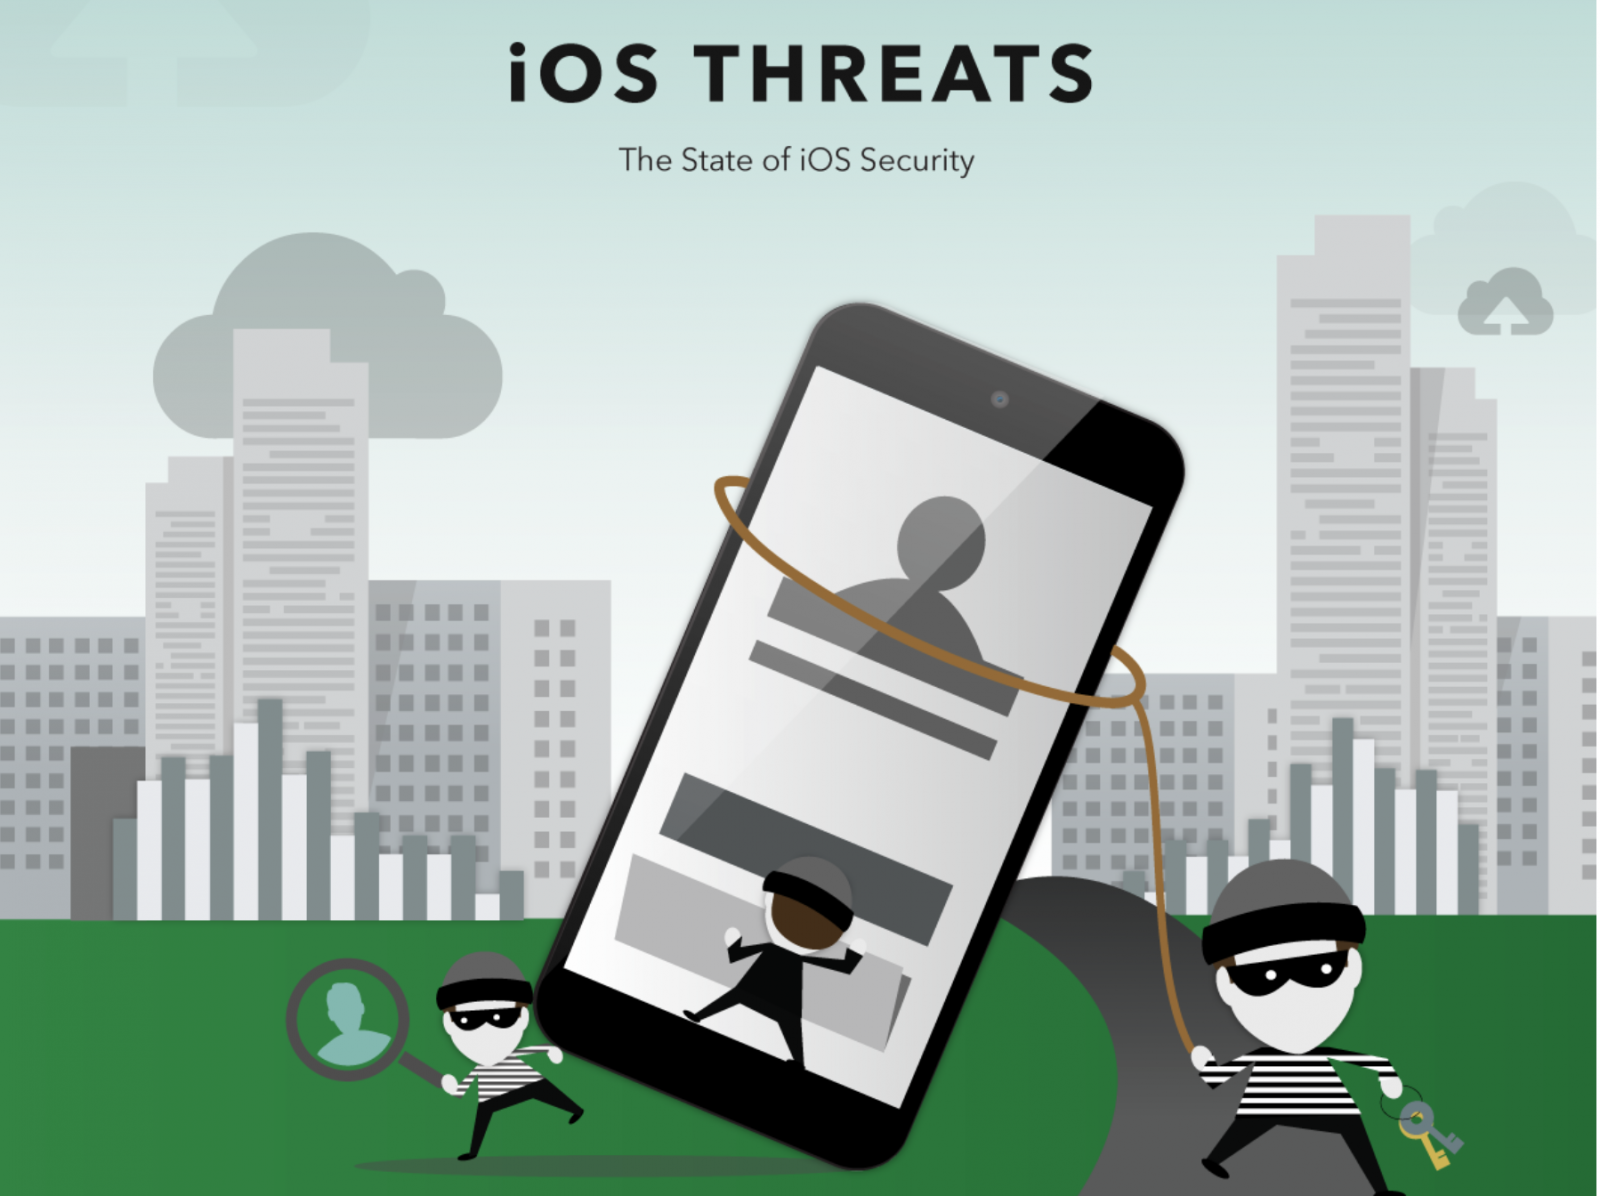 iOS malware threats will emerge in 2015